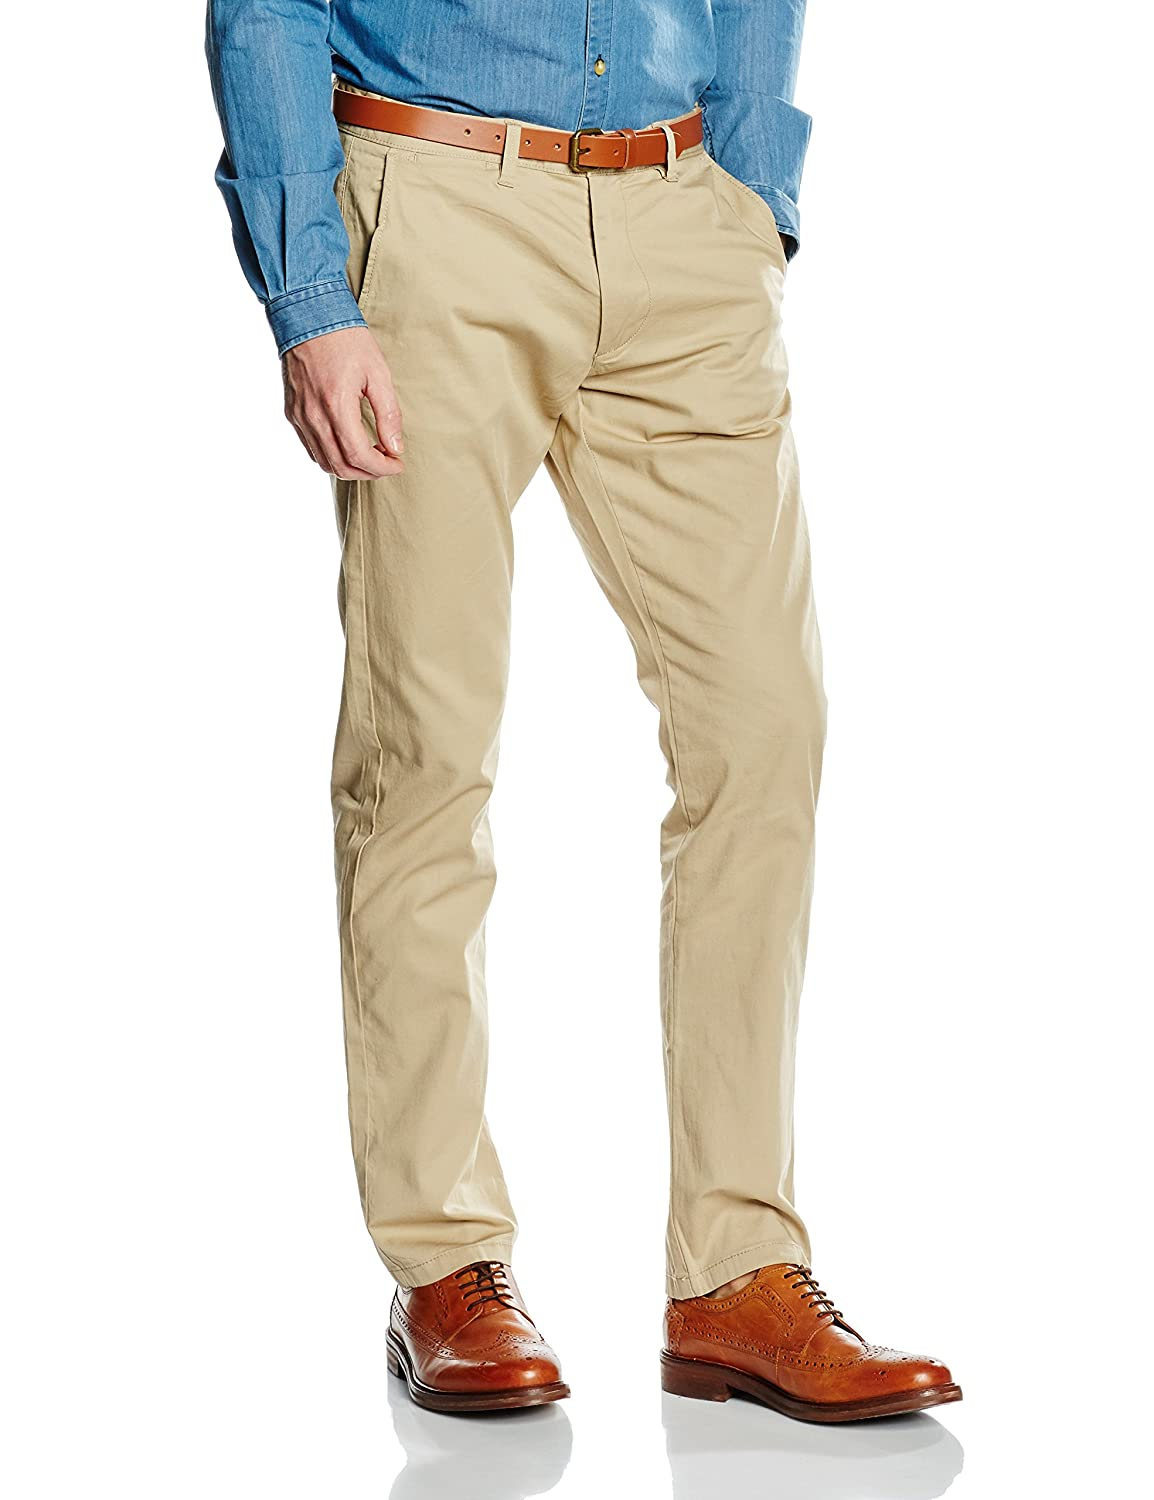 Mens 16048757 Trousers Selected 4zgVRityd0